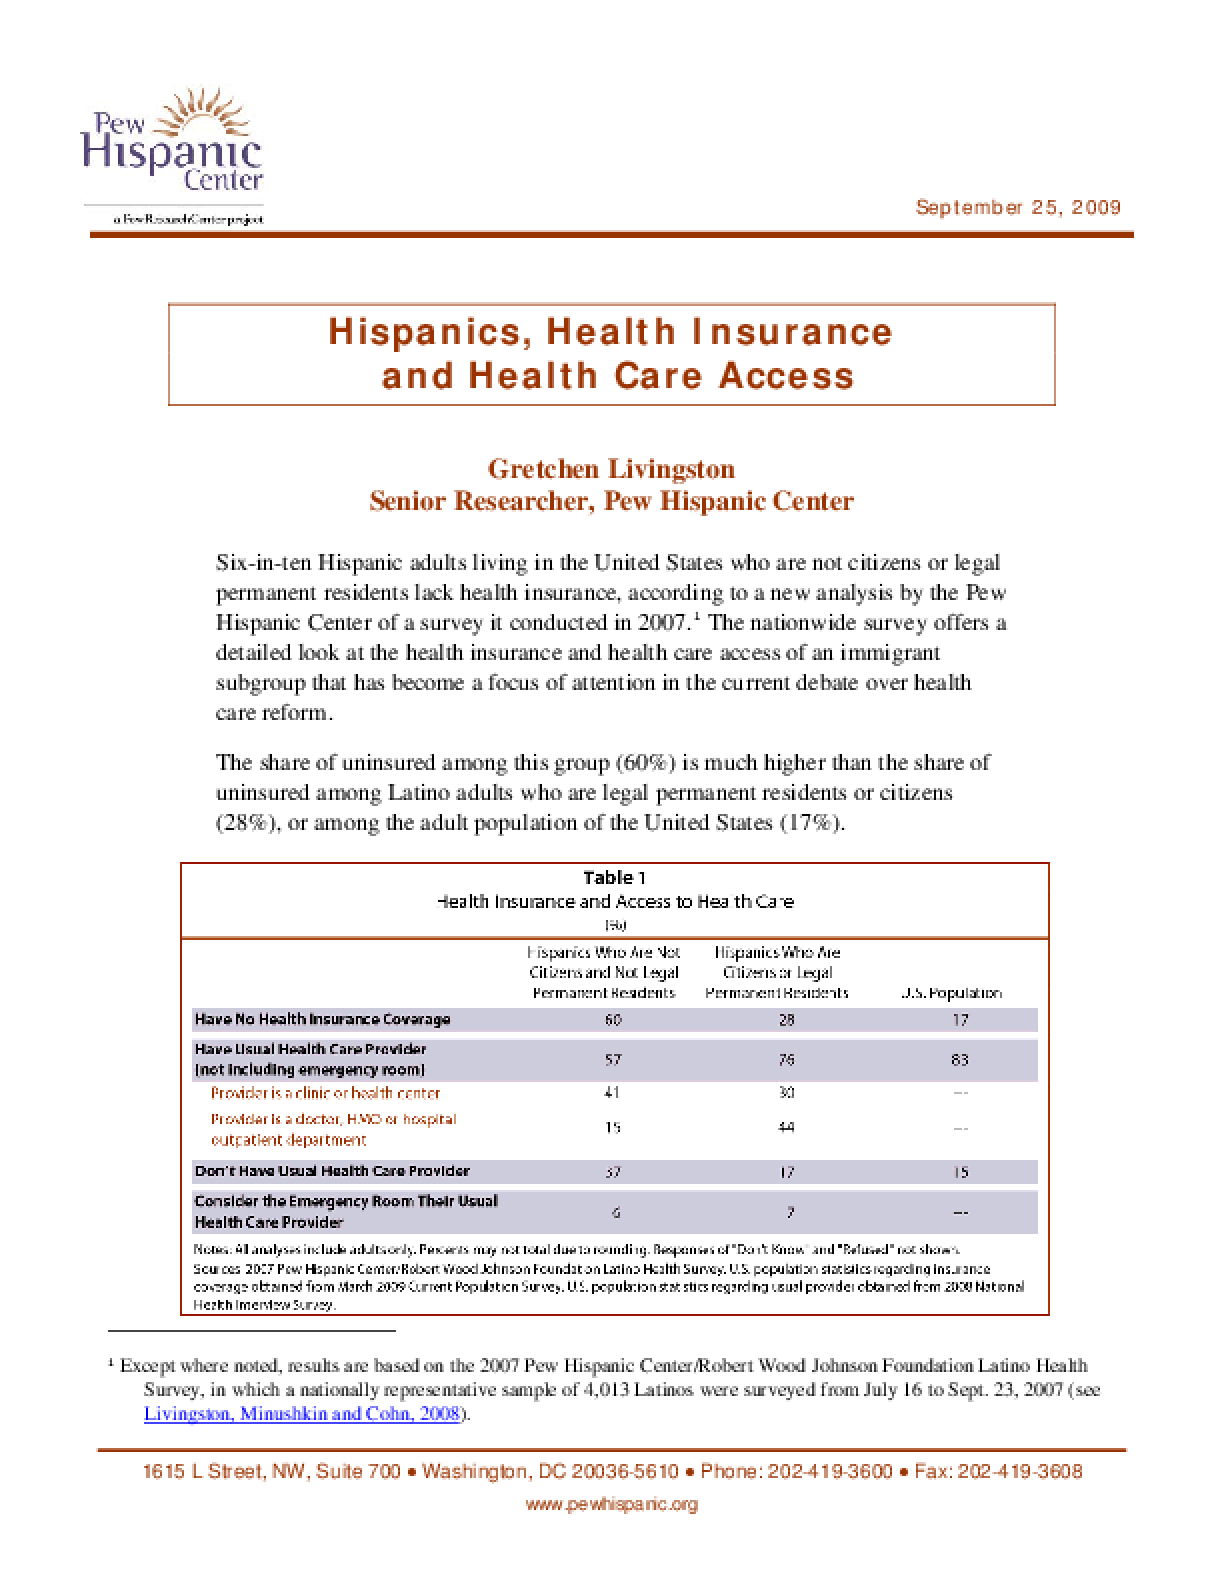 Hispanics, Health Insurance and Health Care Access